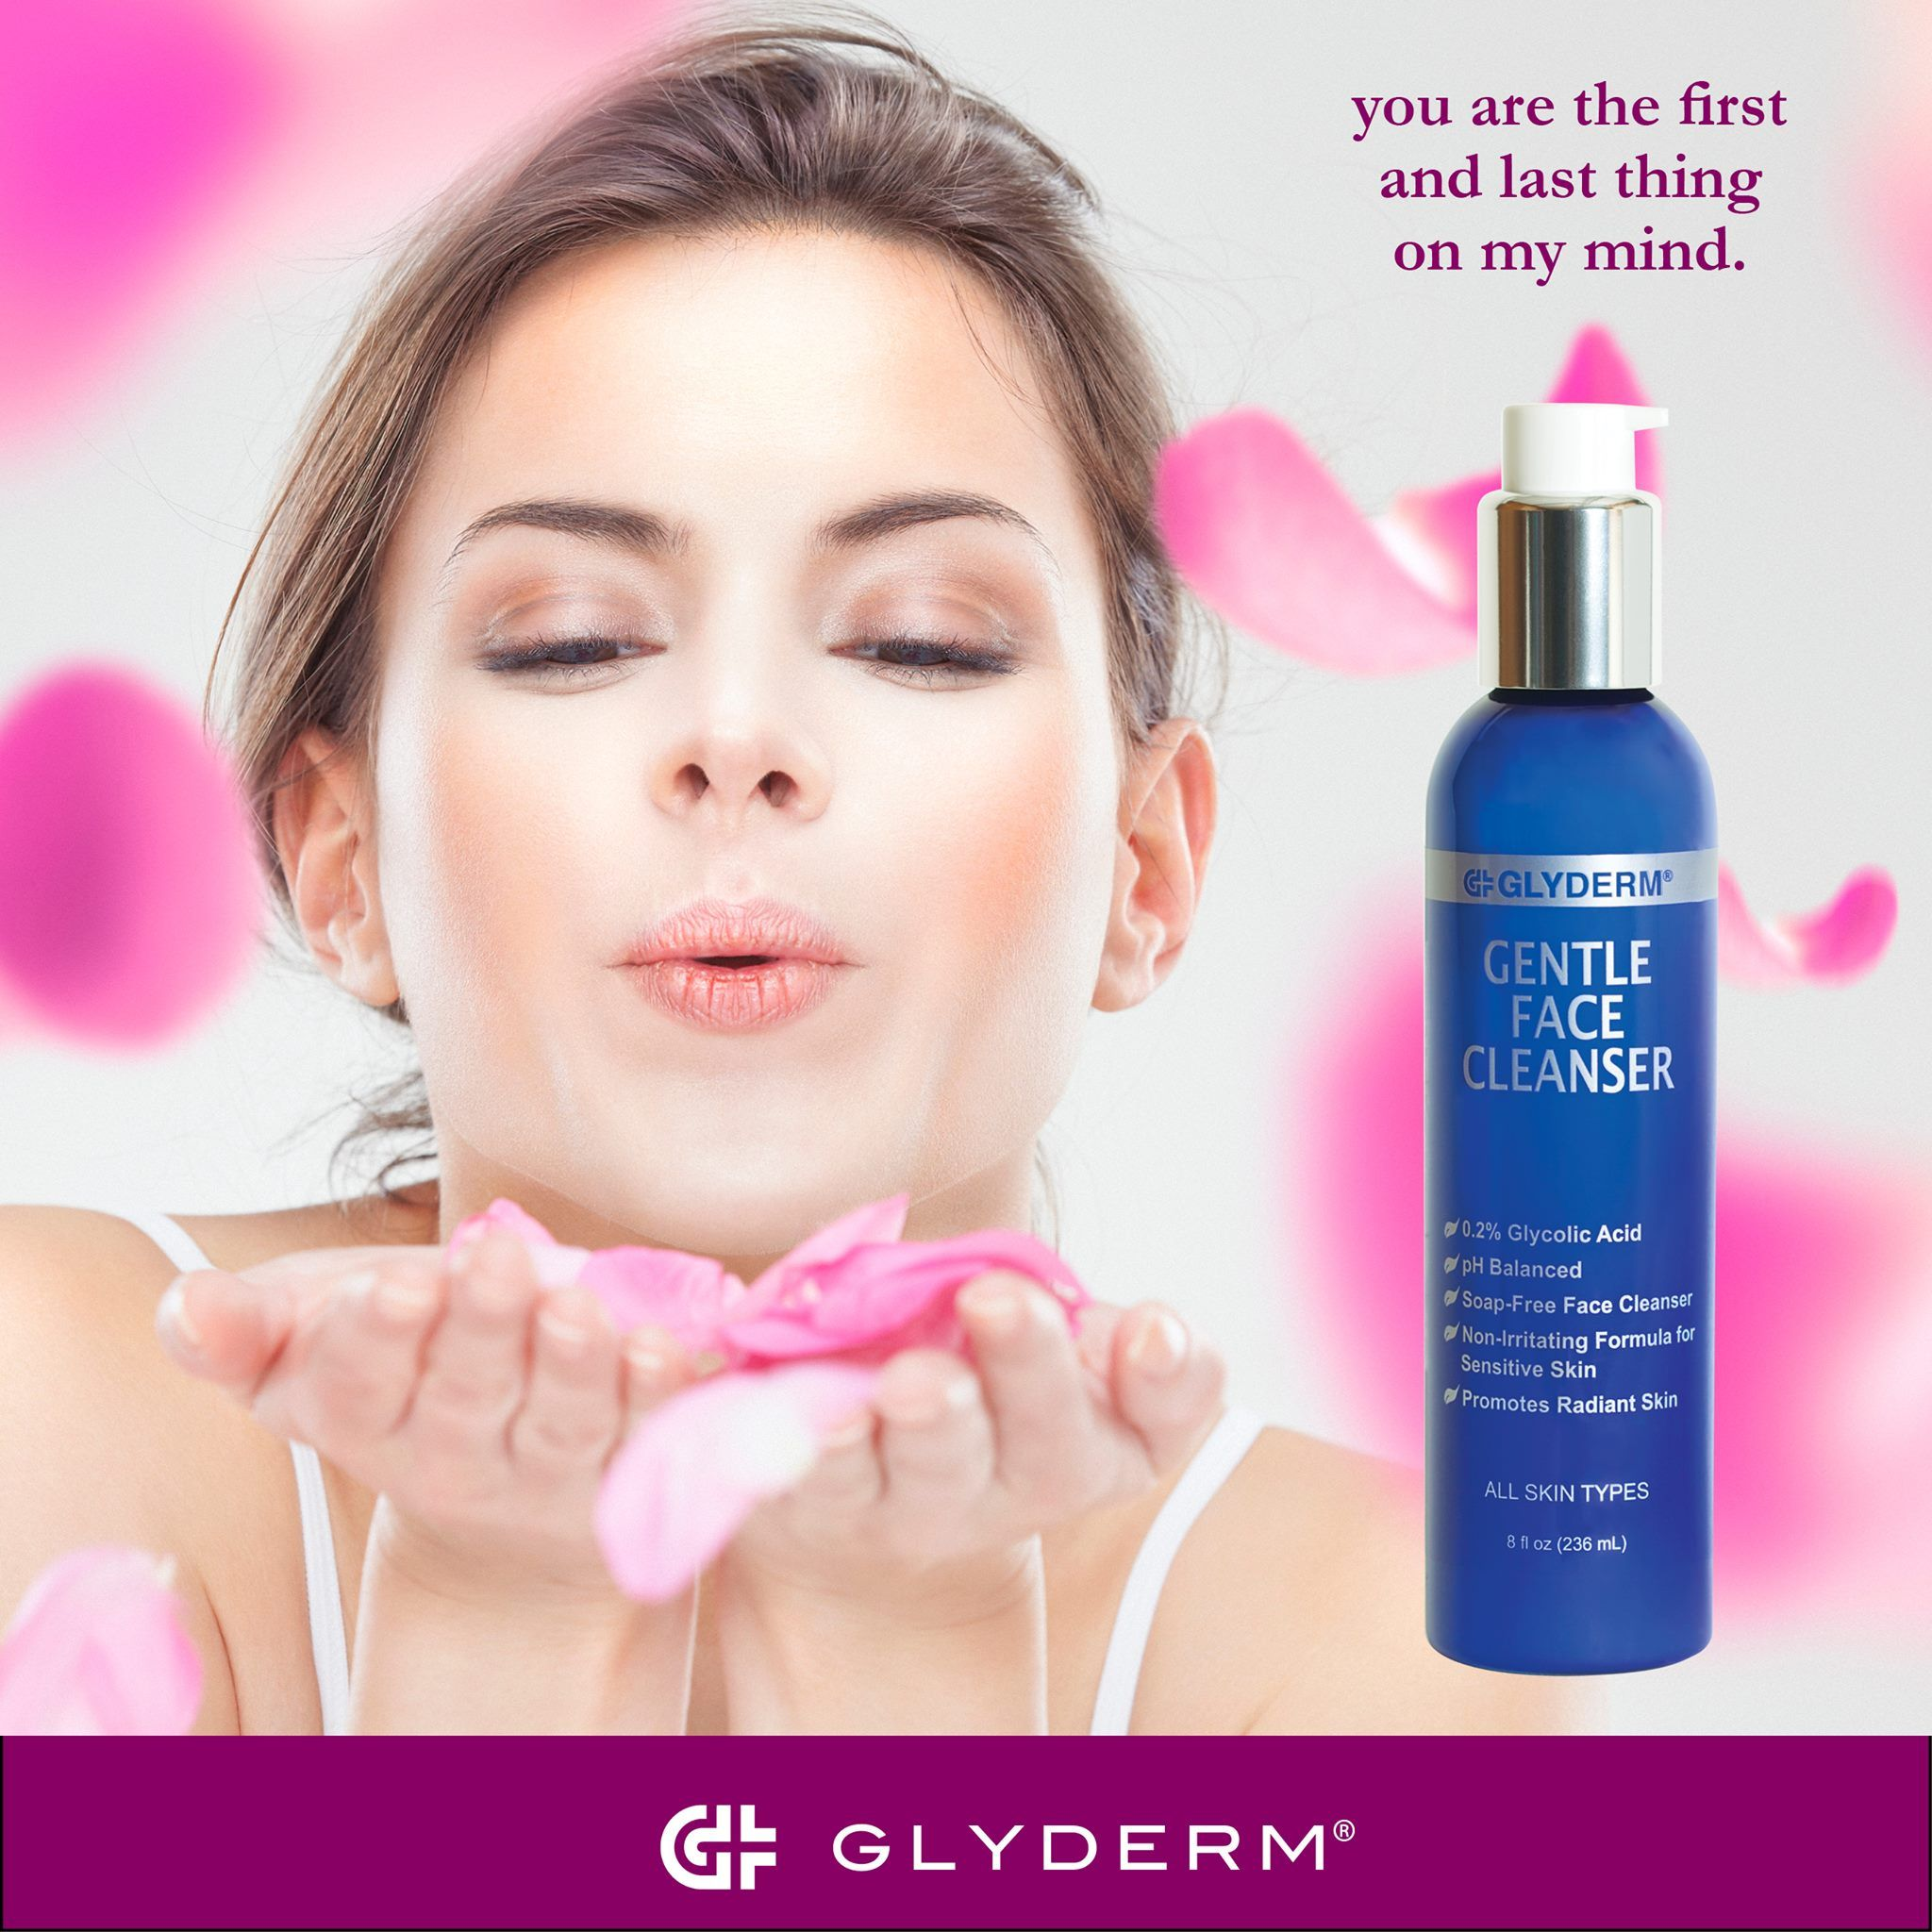 Glyderm facial cleanser consider, what